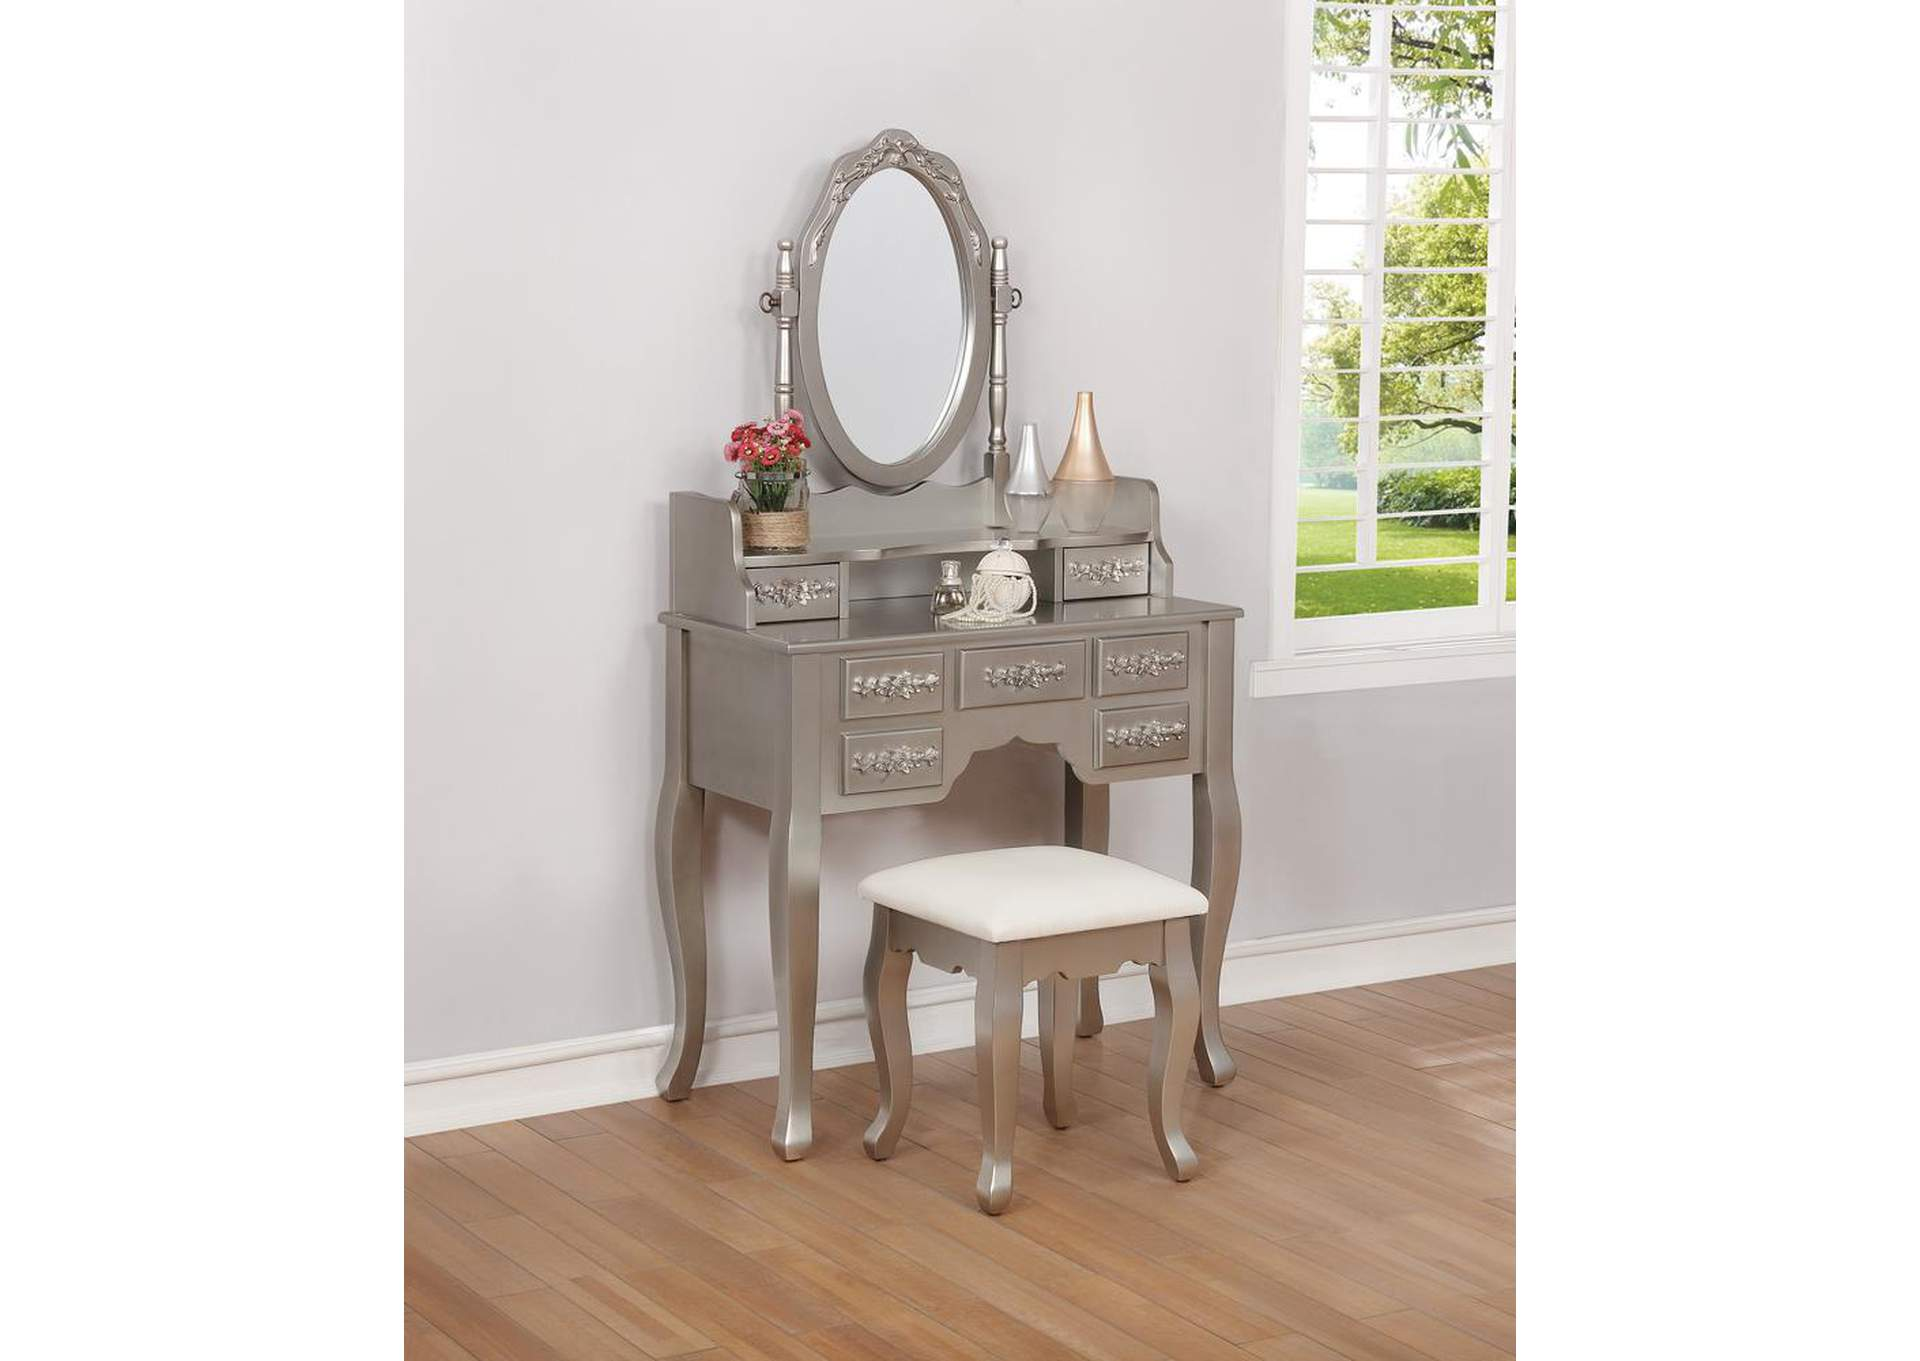 Silver/White Vanity Set,Coaster Furniture